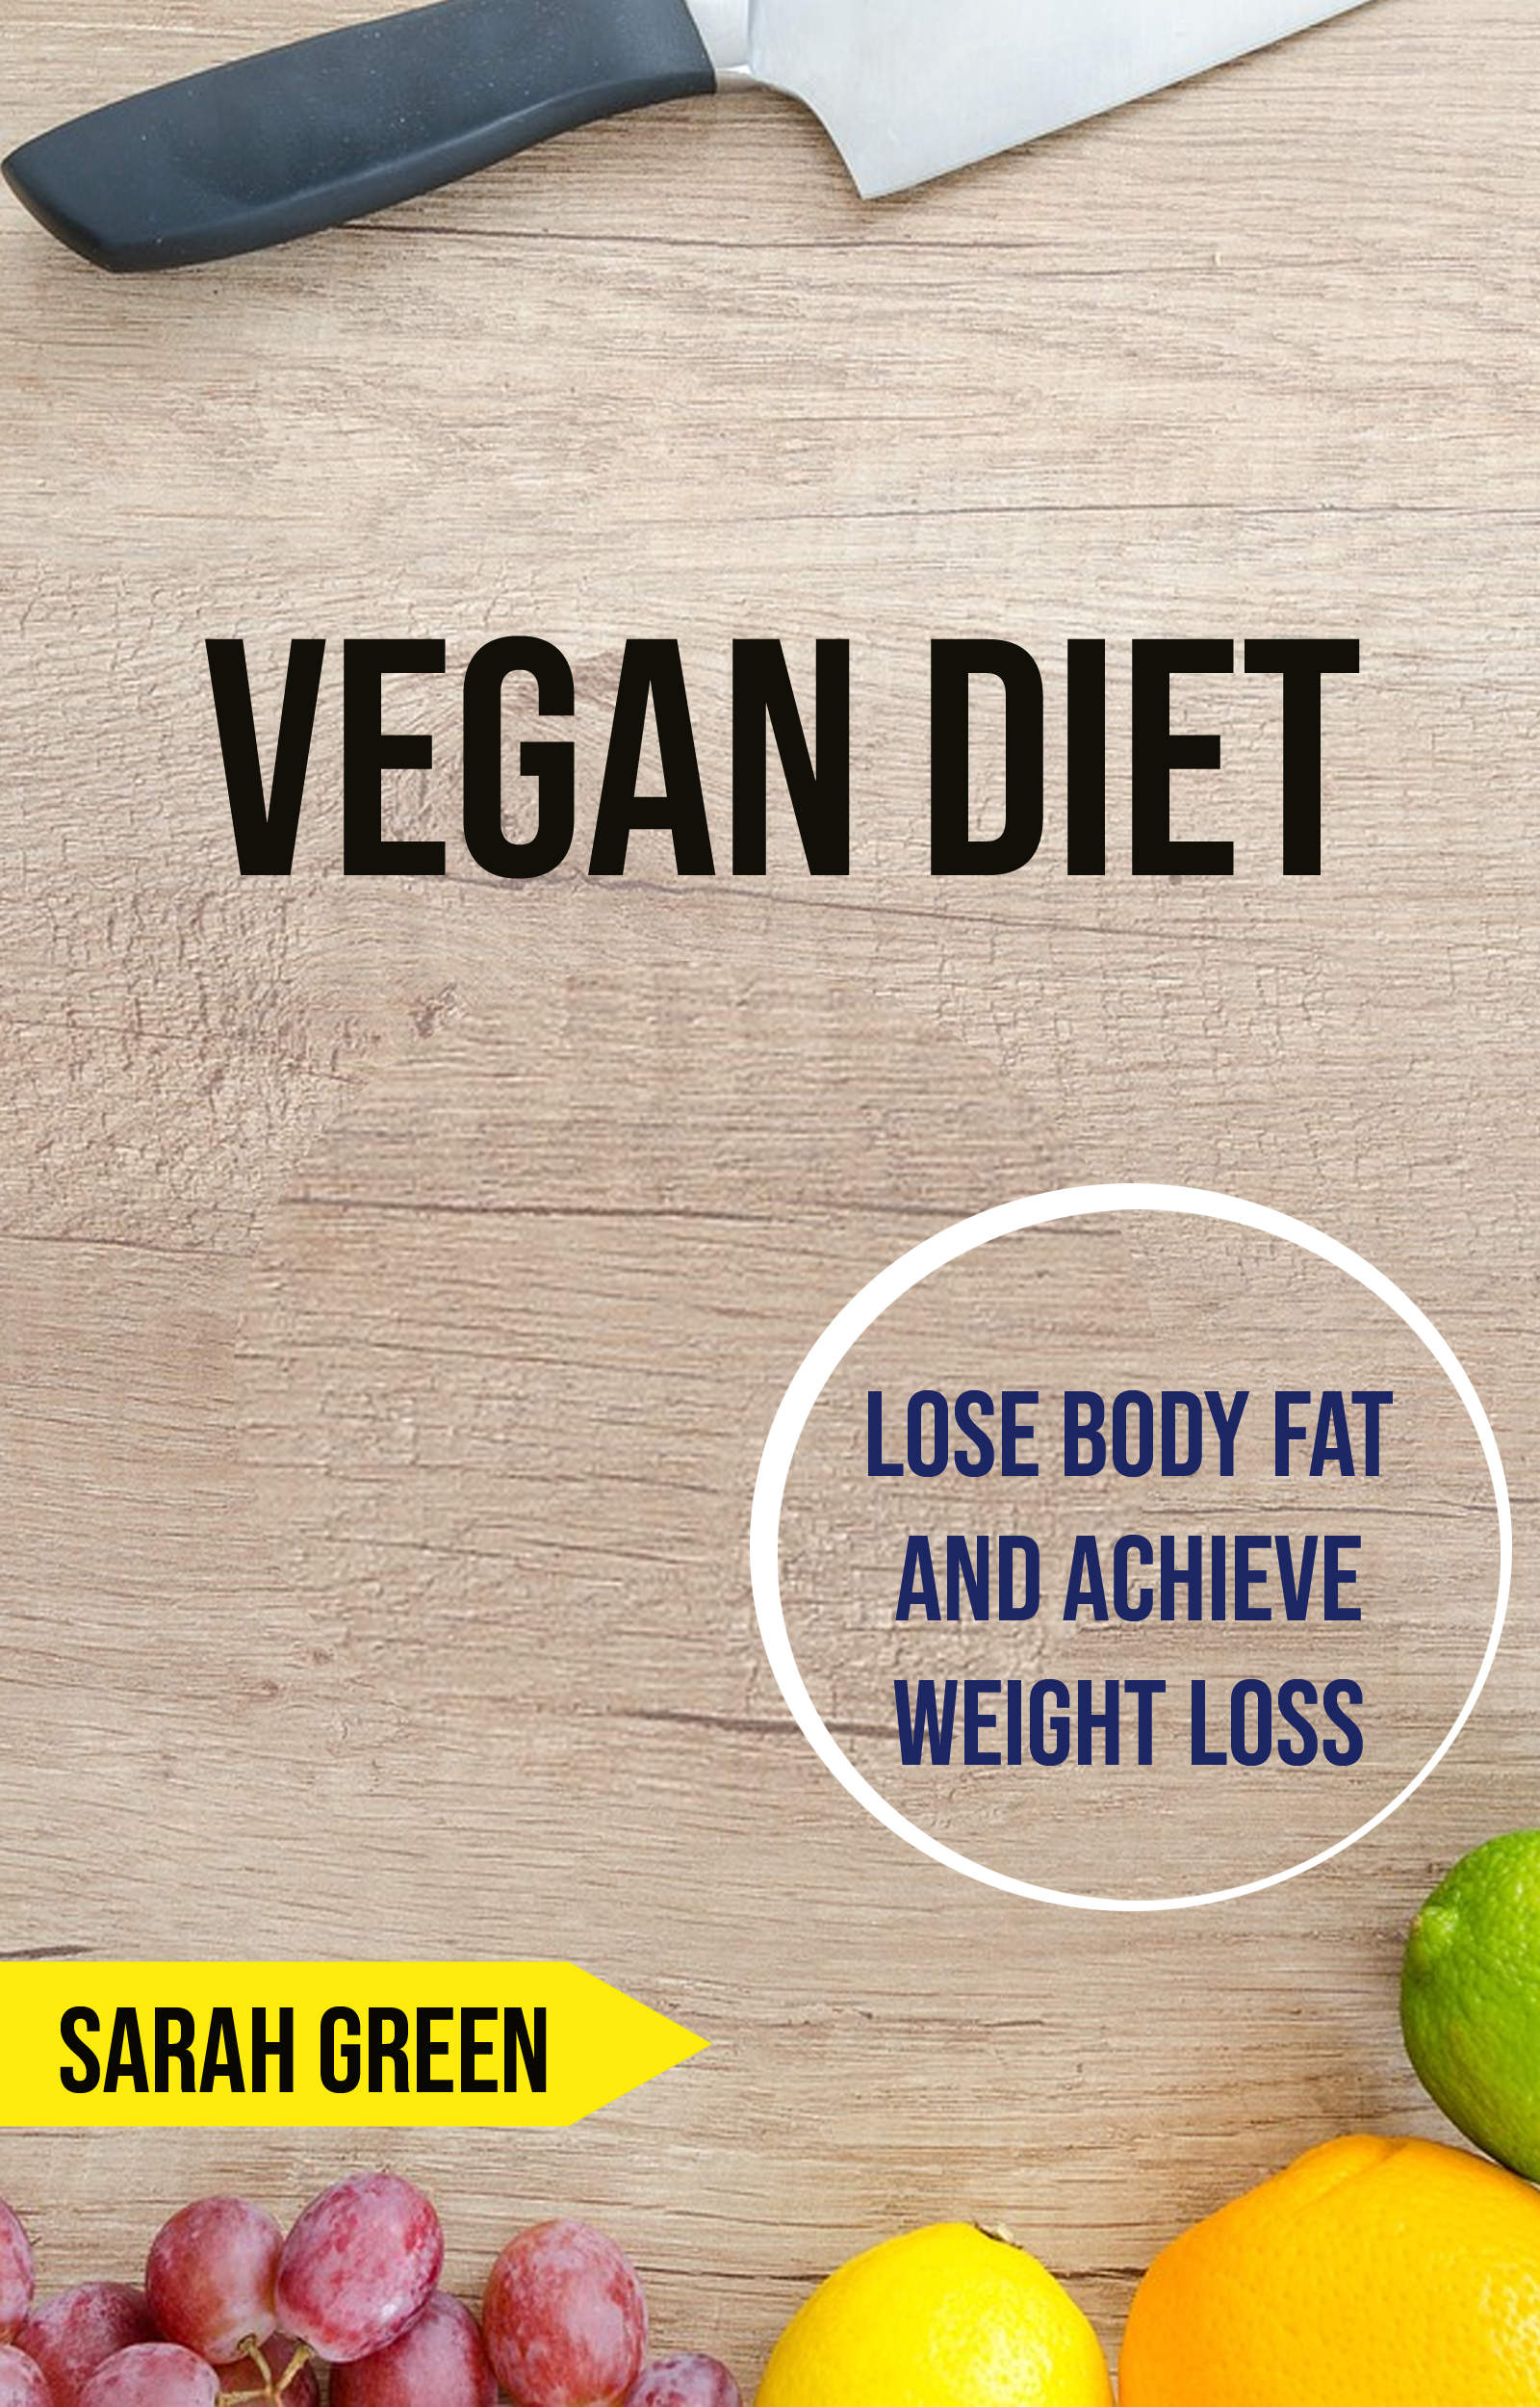 Vegan diet: lose body fat and achieve weight loss